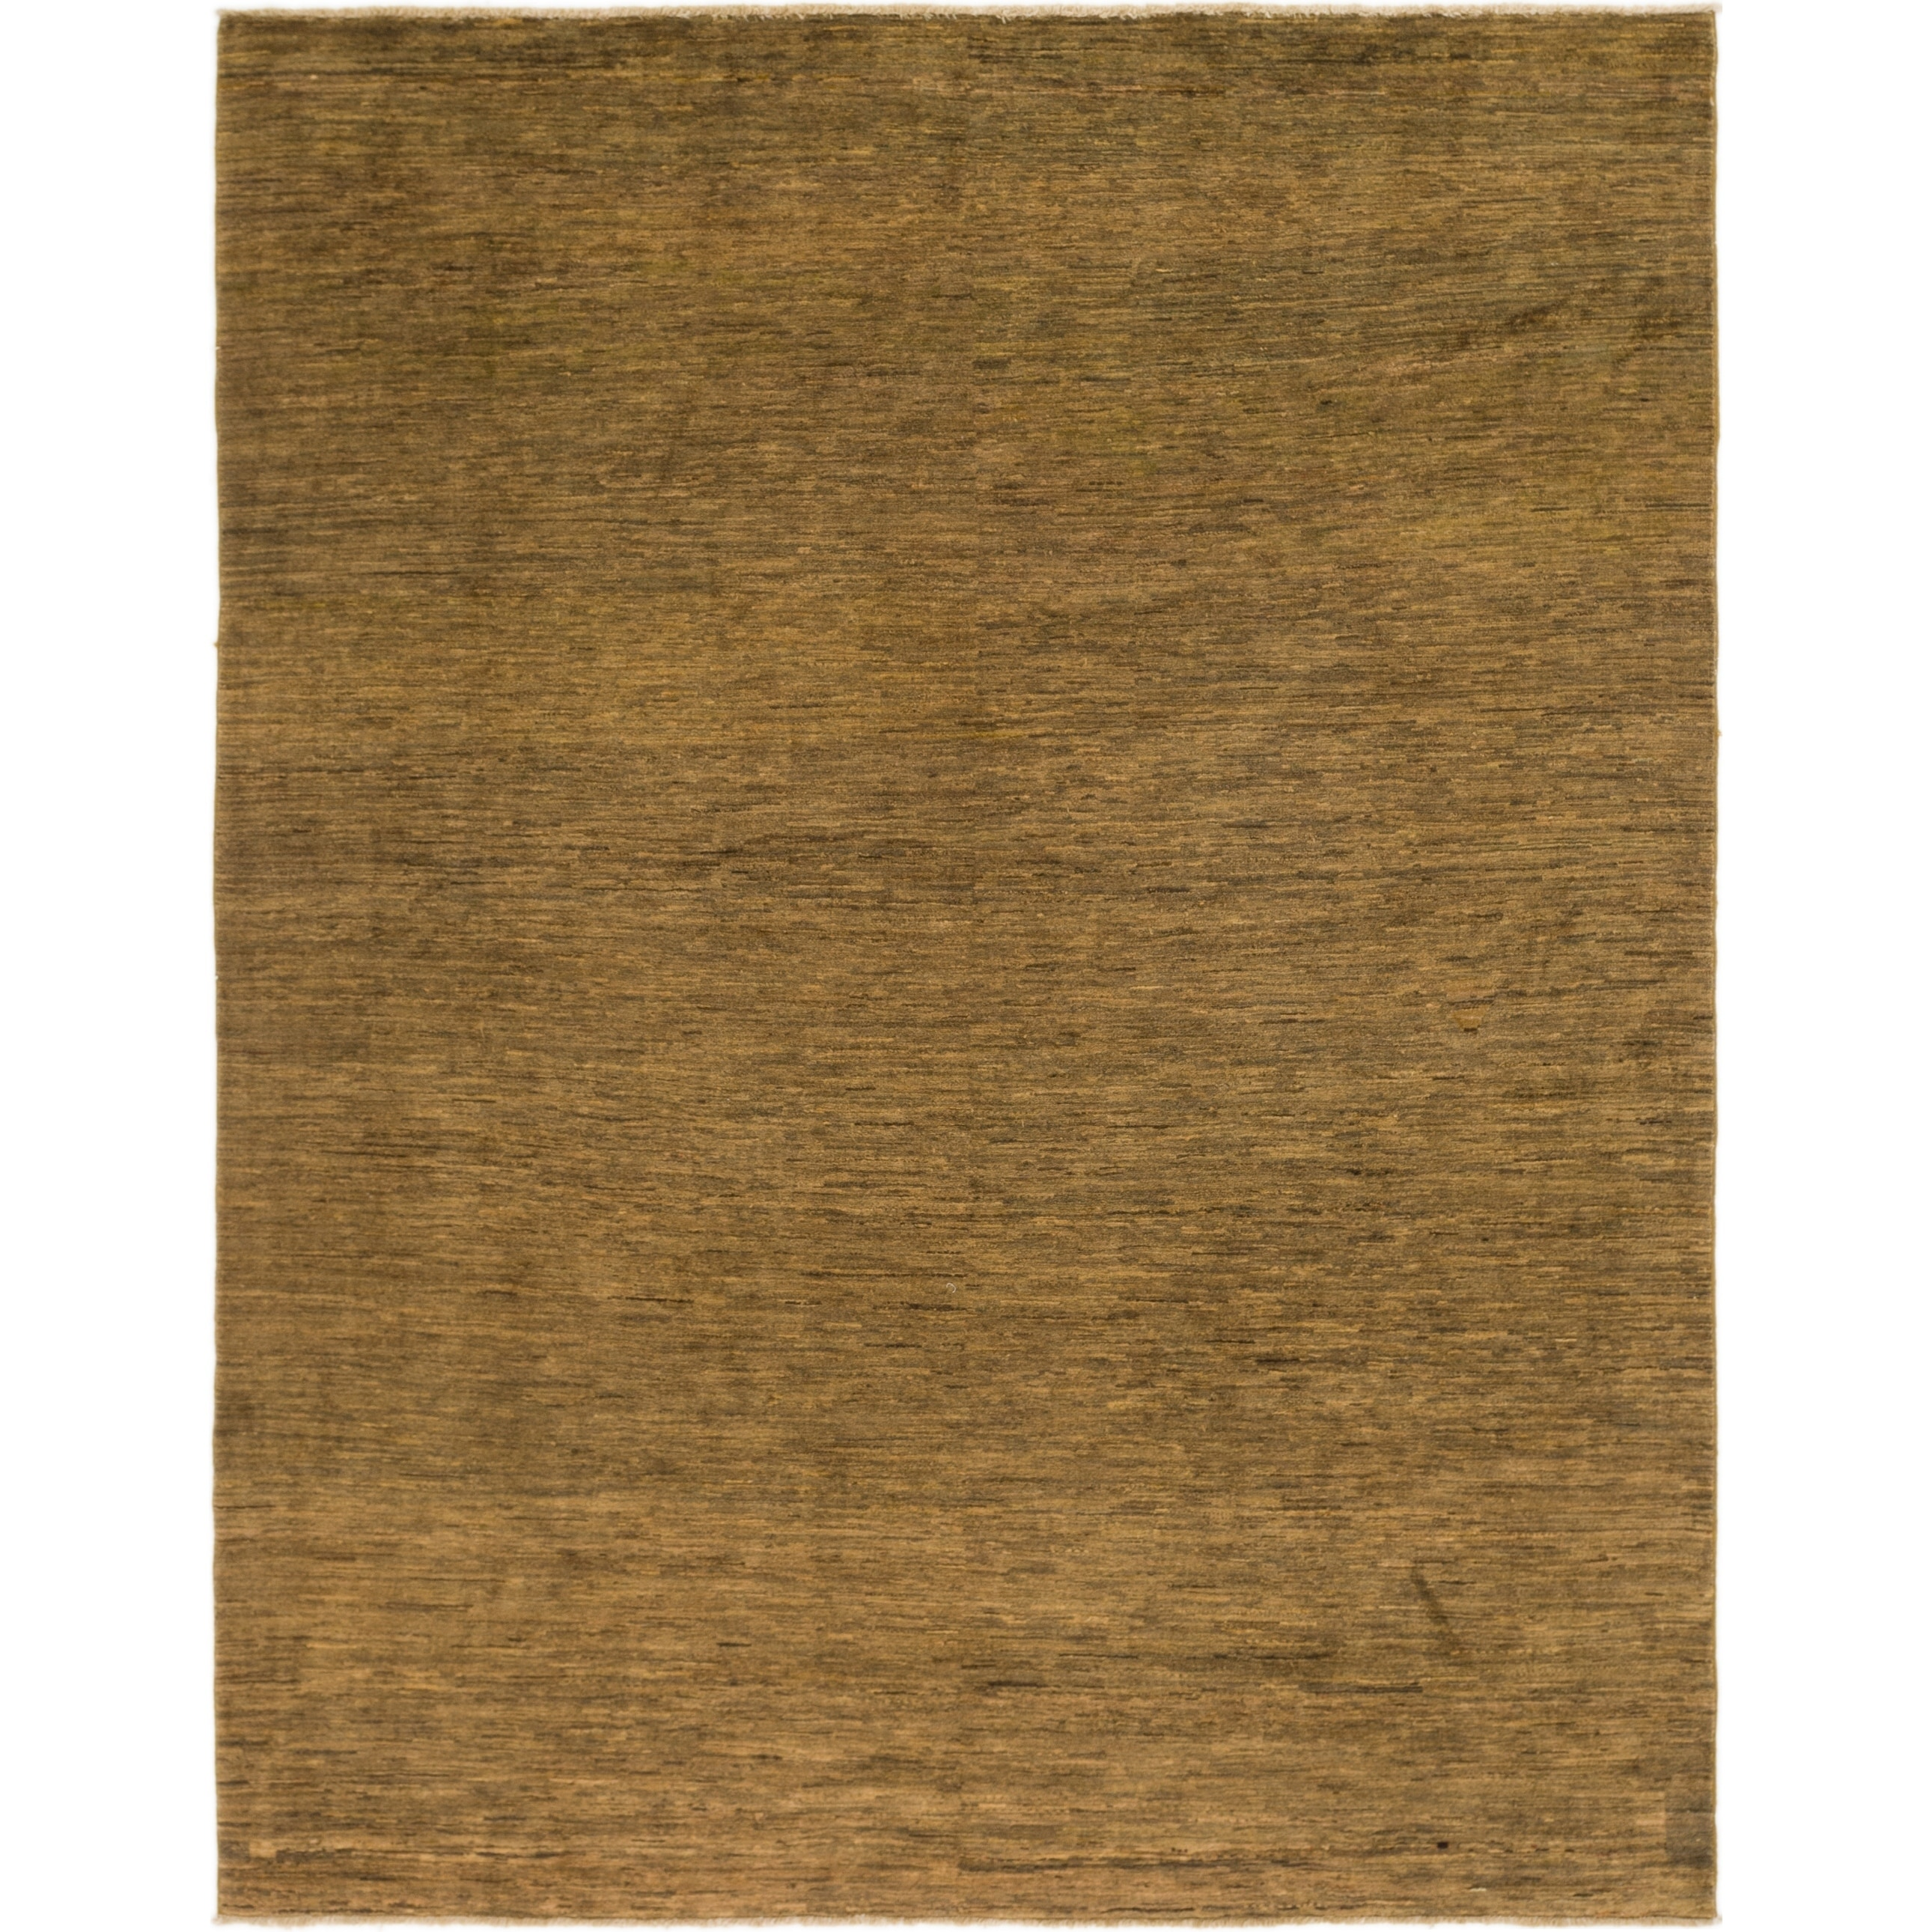 Hand Knotted Kashkuli Gabbeh Wool Area Rug - 7 9 x 10 (Brown - 7 9 x 10)